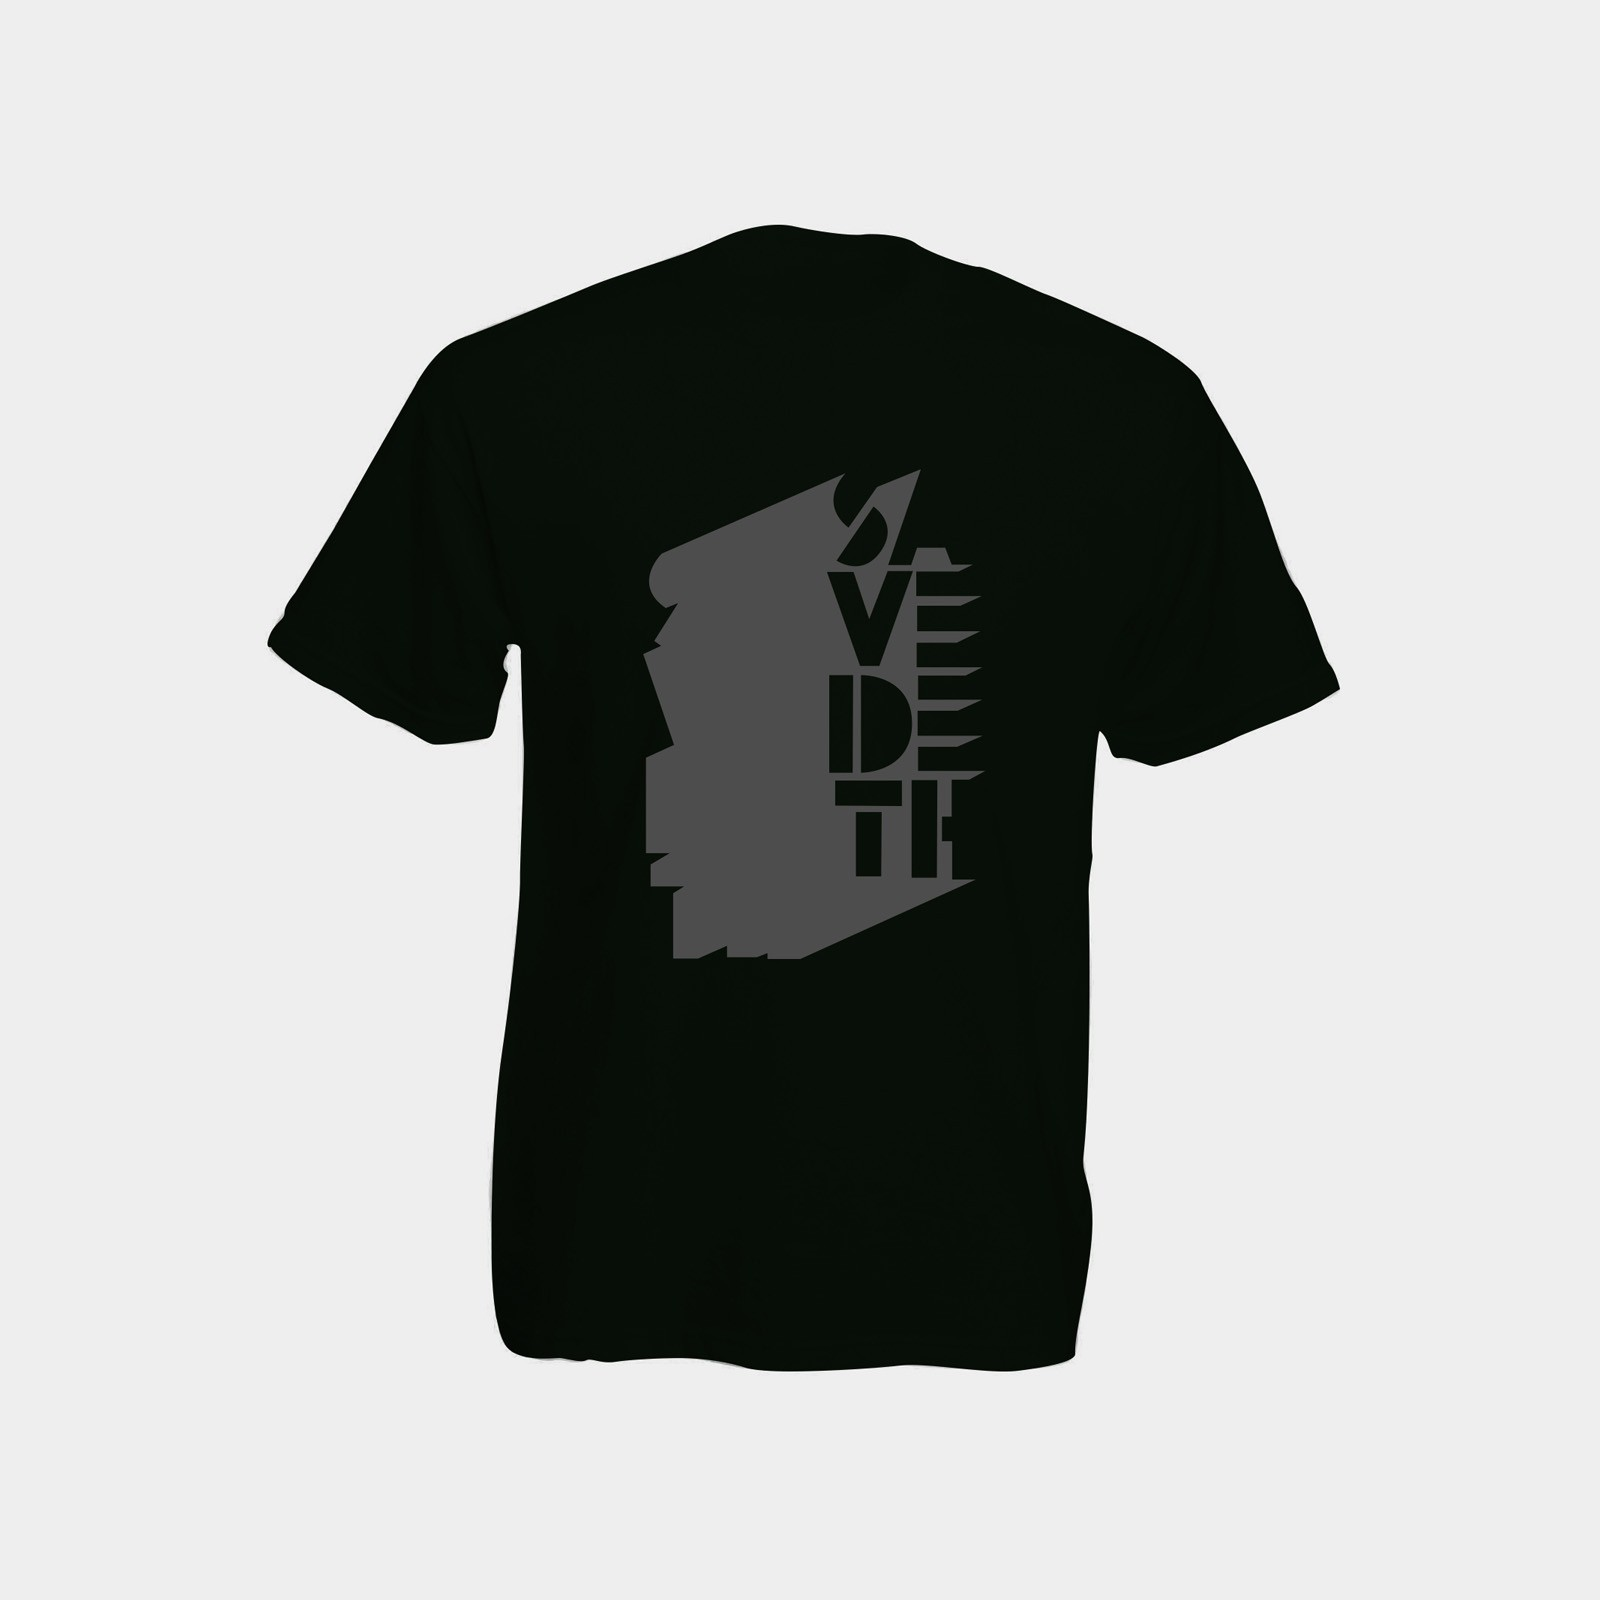 Implied / black on black (Size M) by Save Deth